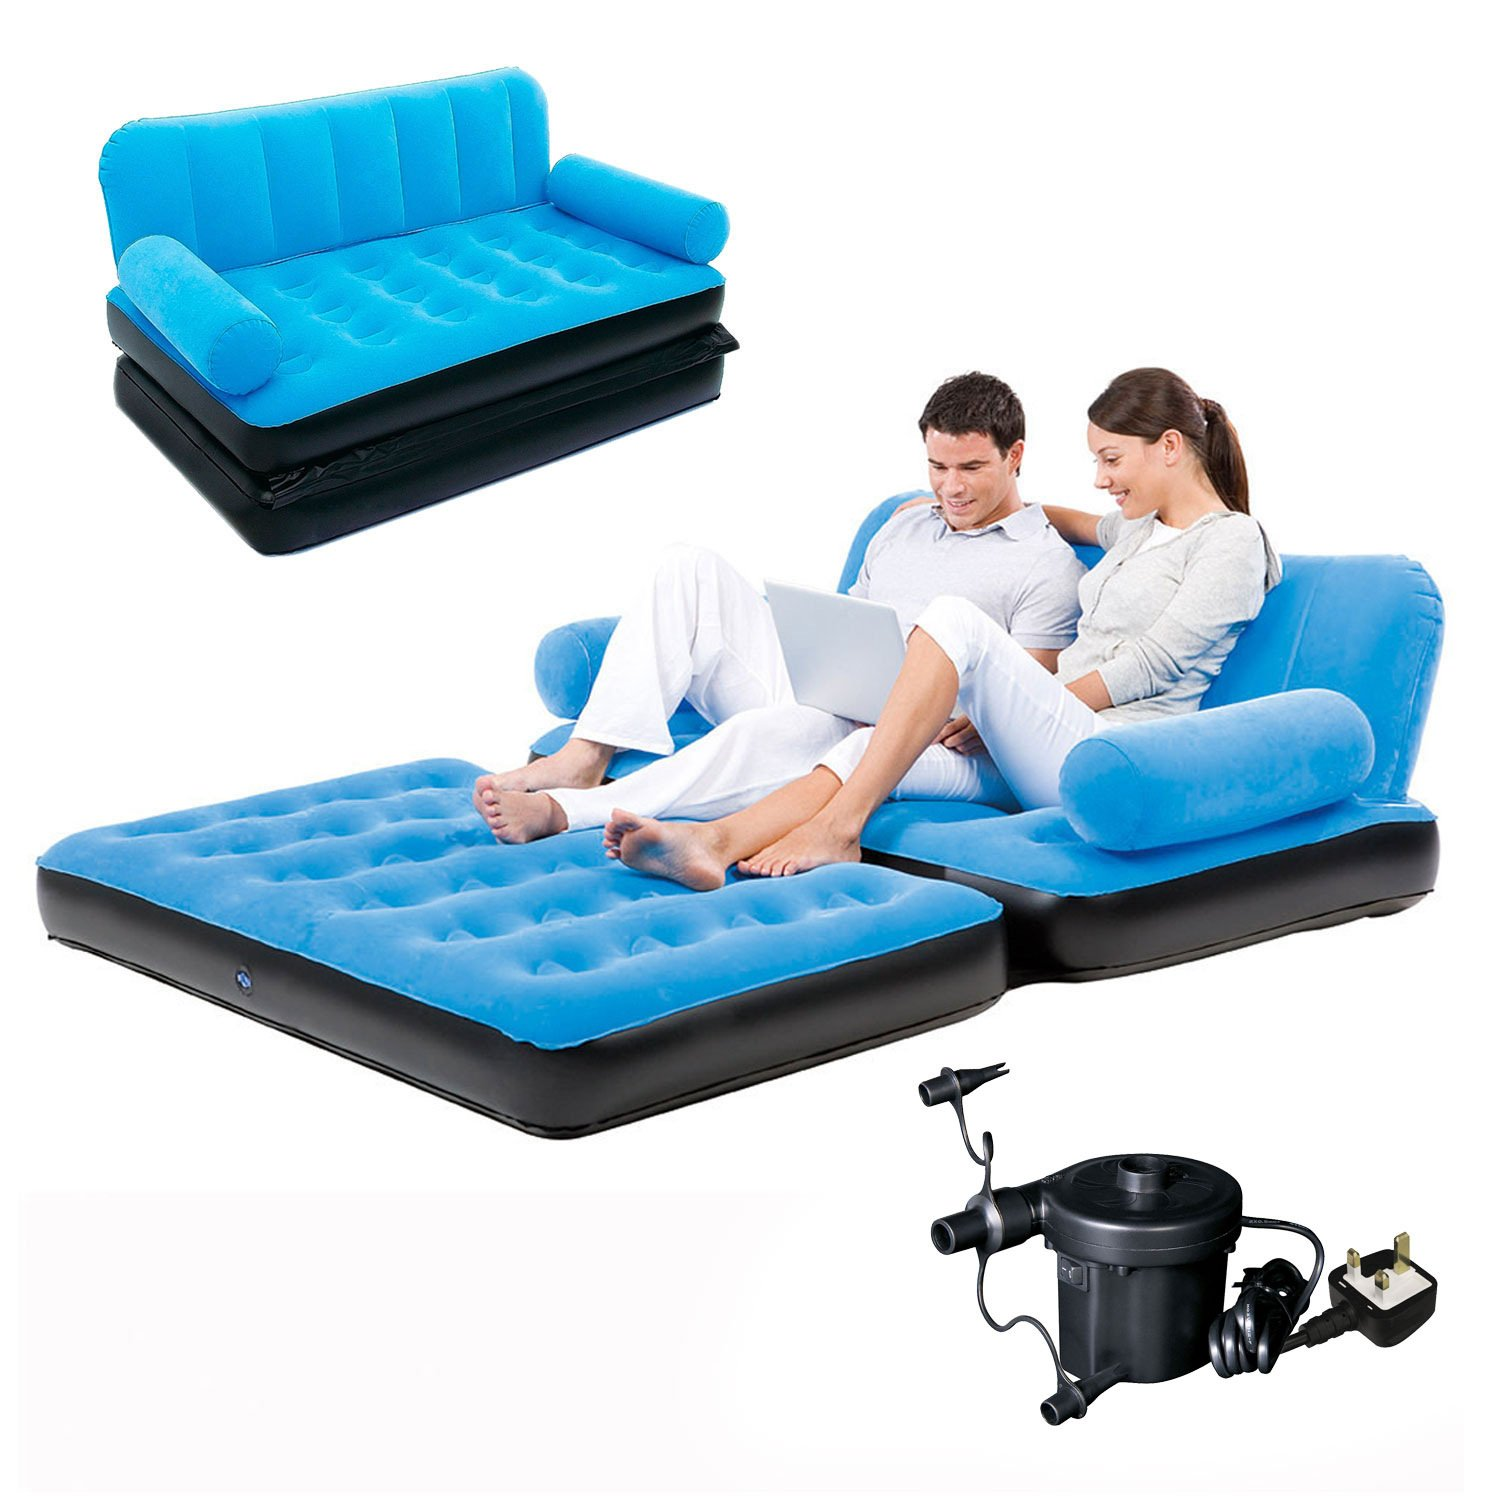 Bestway Flocked Double Inflatable Air Bed/Couch Sofa - 1.88 x 1.52 x 0.64  m, Blue: Amazon.co.uk: Sports & Outdoors